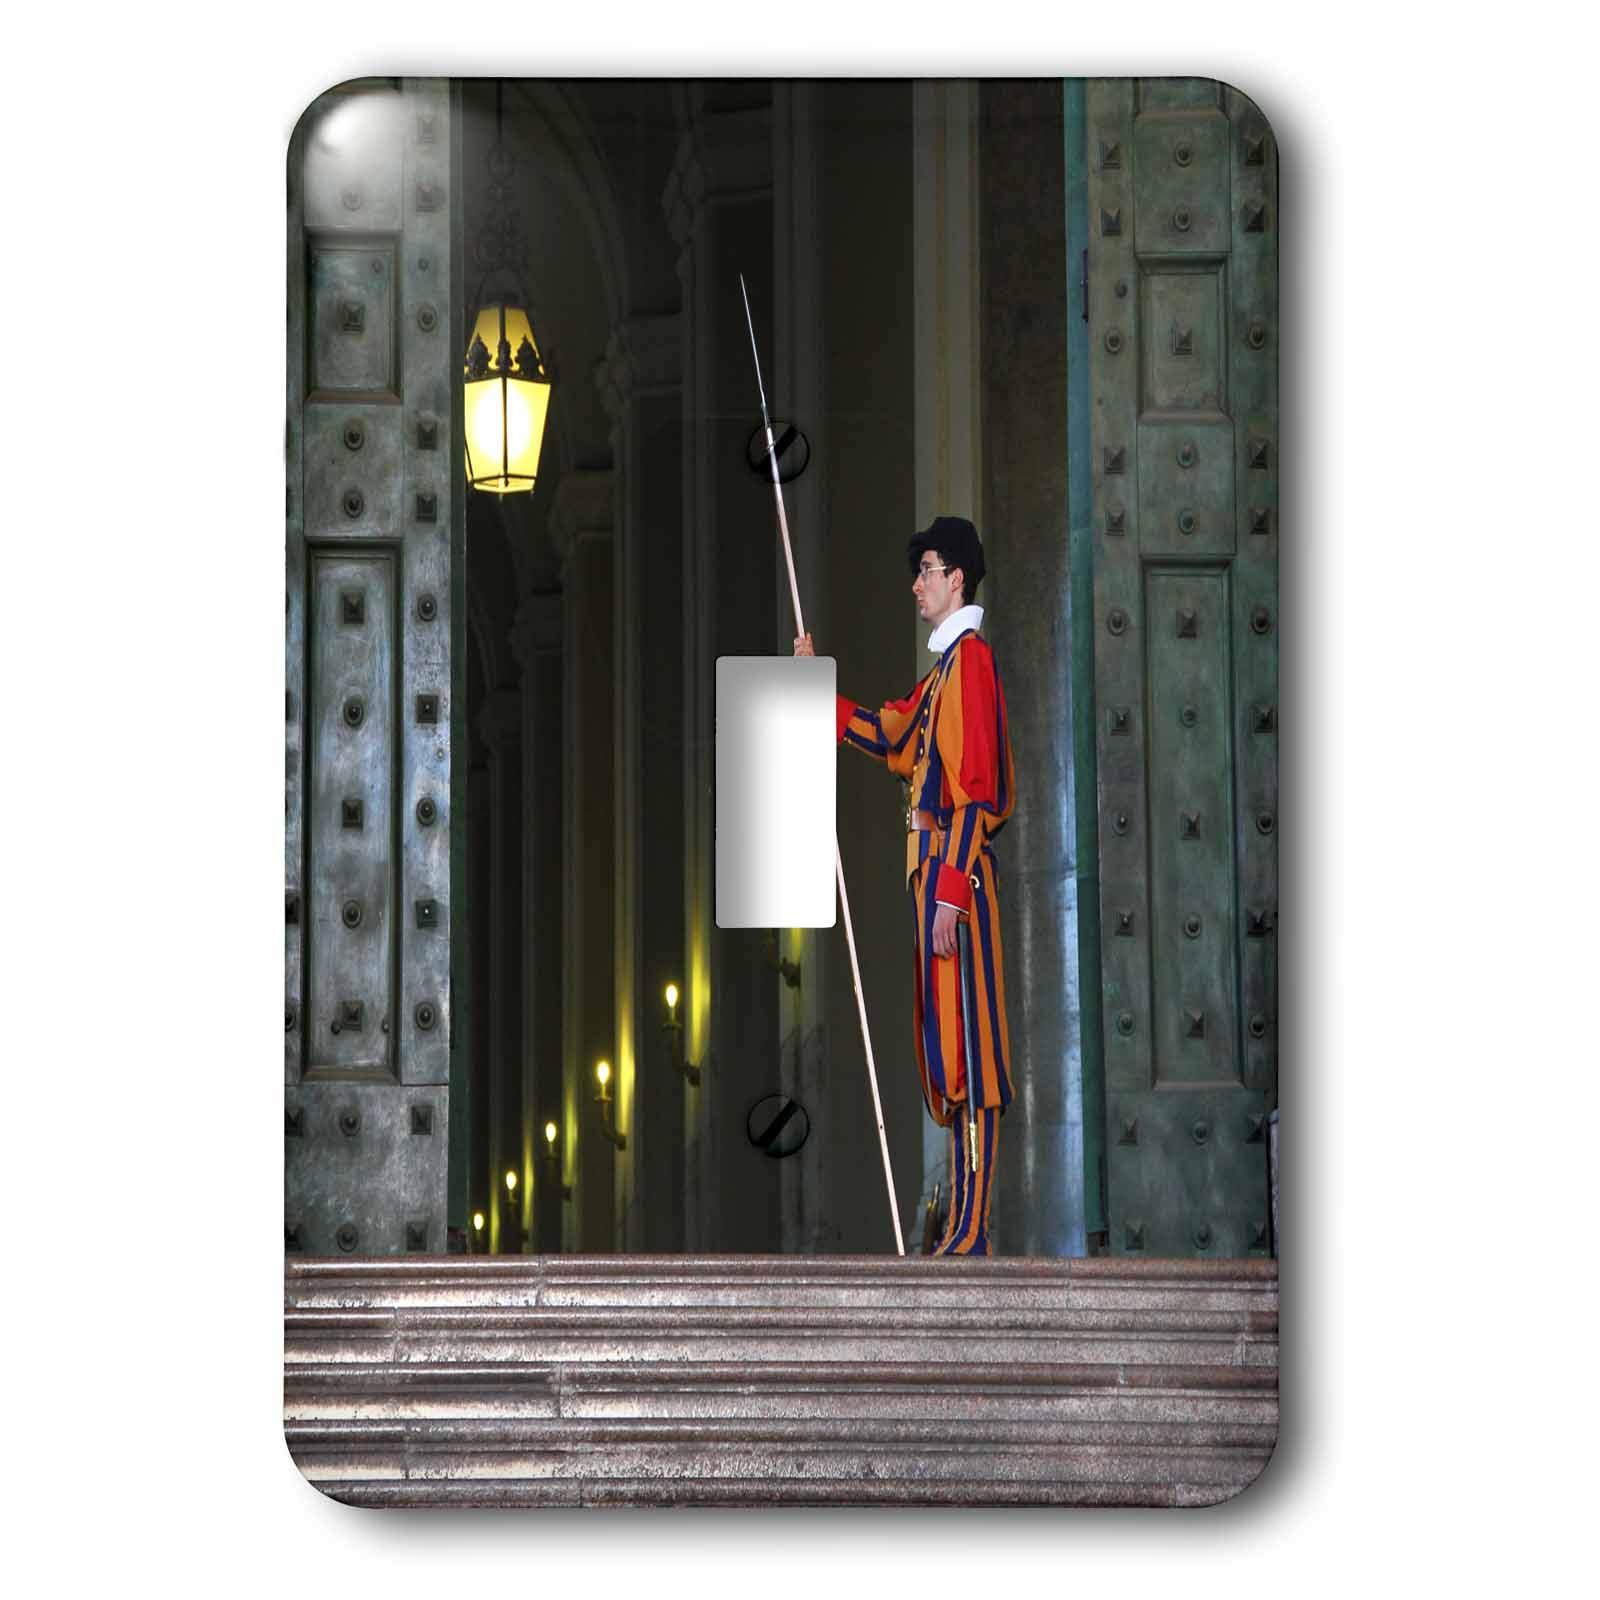 3dRose Elysium Photography - Portrait - Swiss guard on duty, Vatican City - Light Switch Covers - single toggle switch (lsp_289614_1) by 3dRose